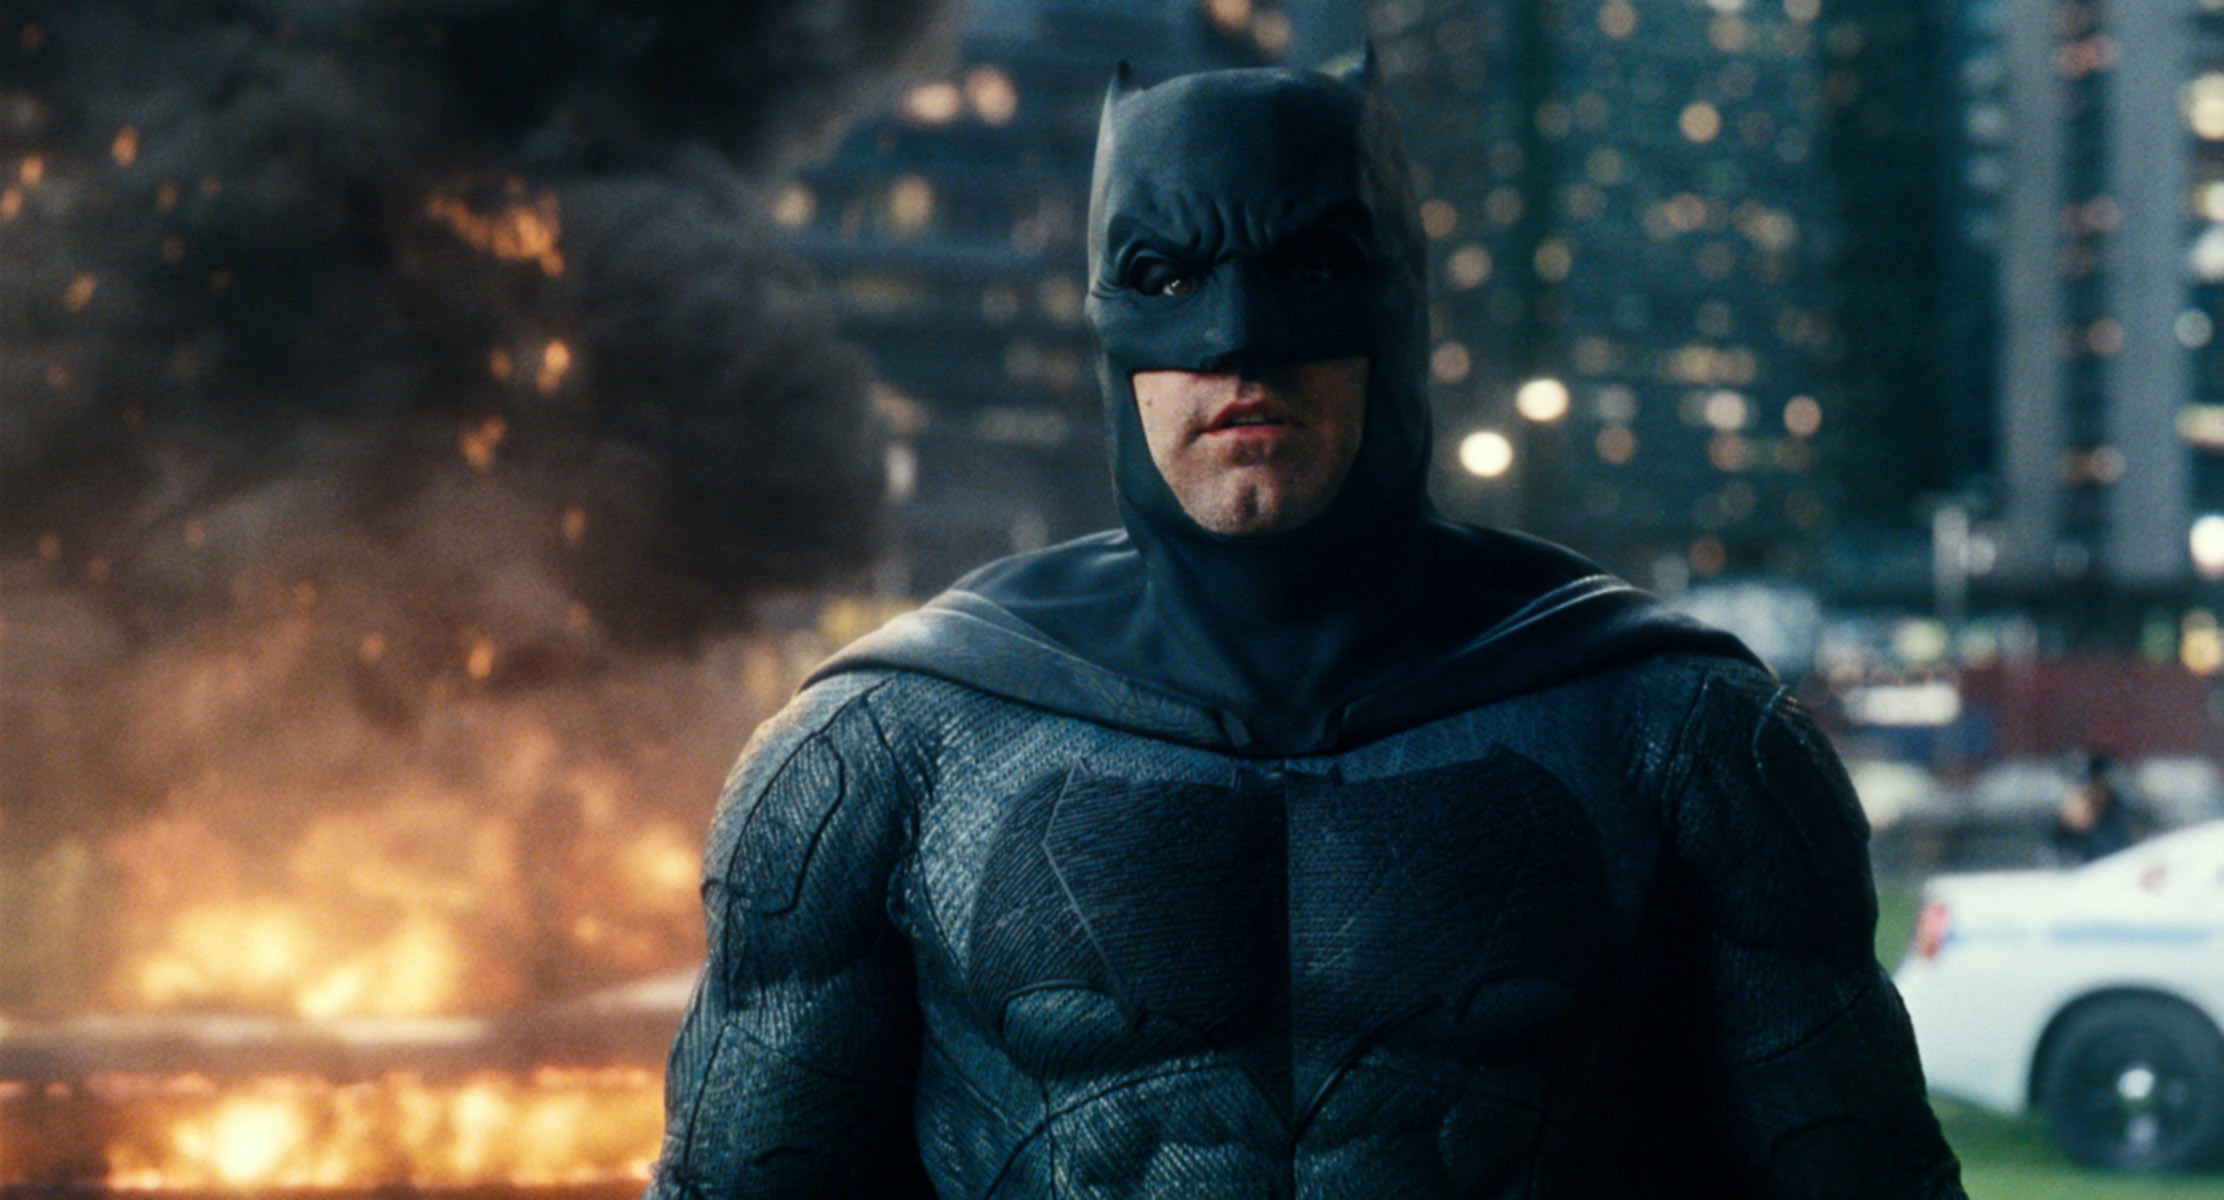 Photo of Ben Affleck dressed as Batman with an explosion behind him